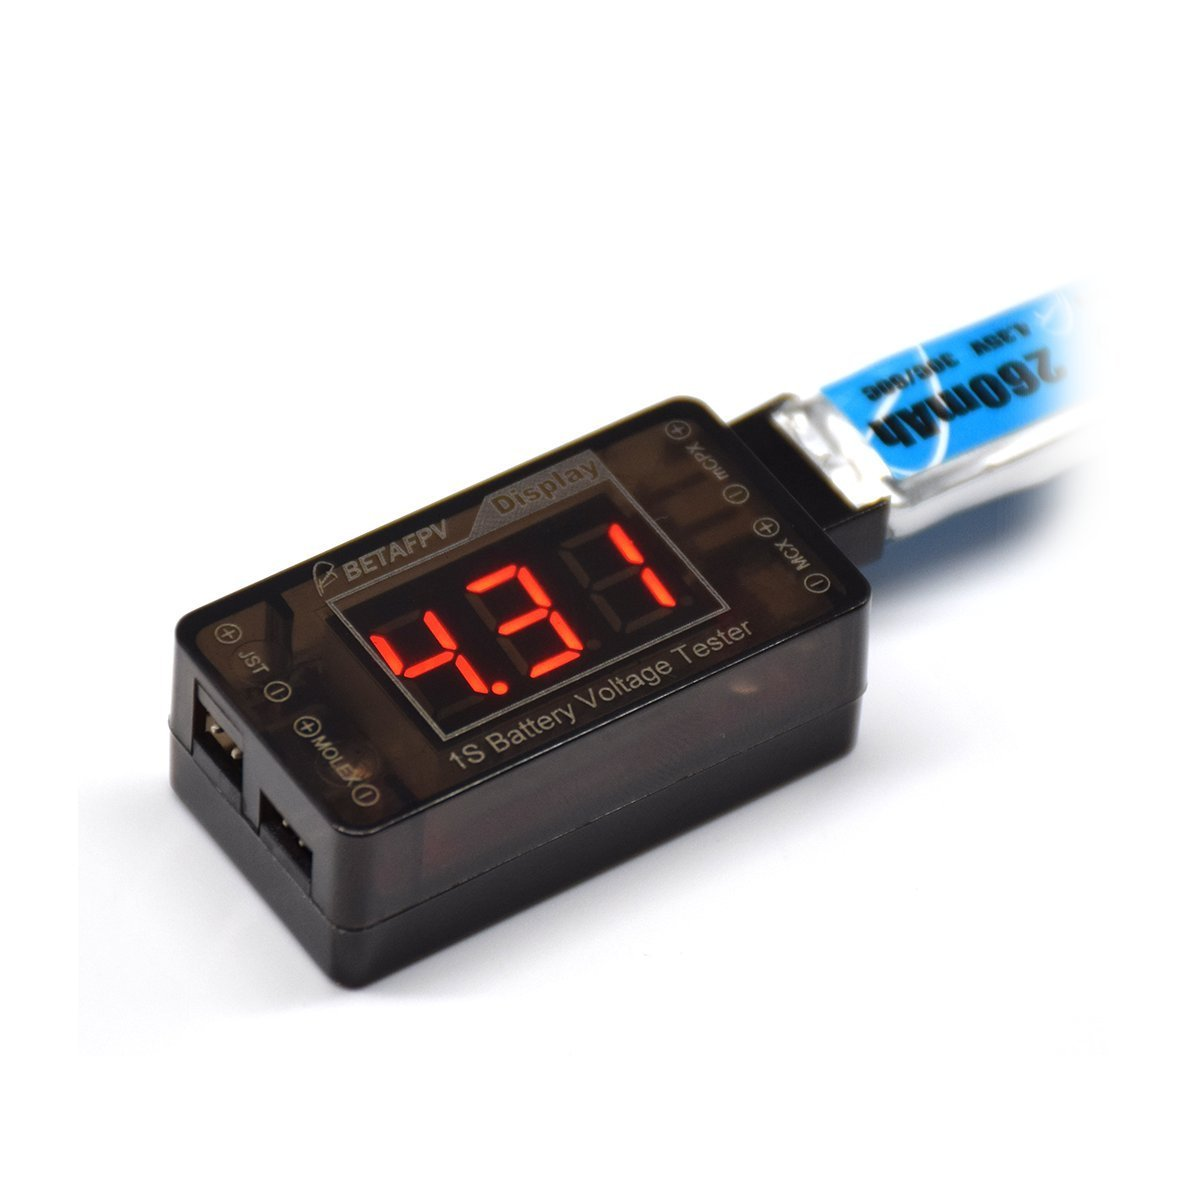 BETAFPV Upgrade 1S LiPo Battery Tester Voltage Checker for Tiny Whoop Blade Inductrix Battery